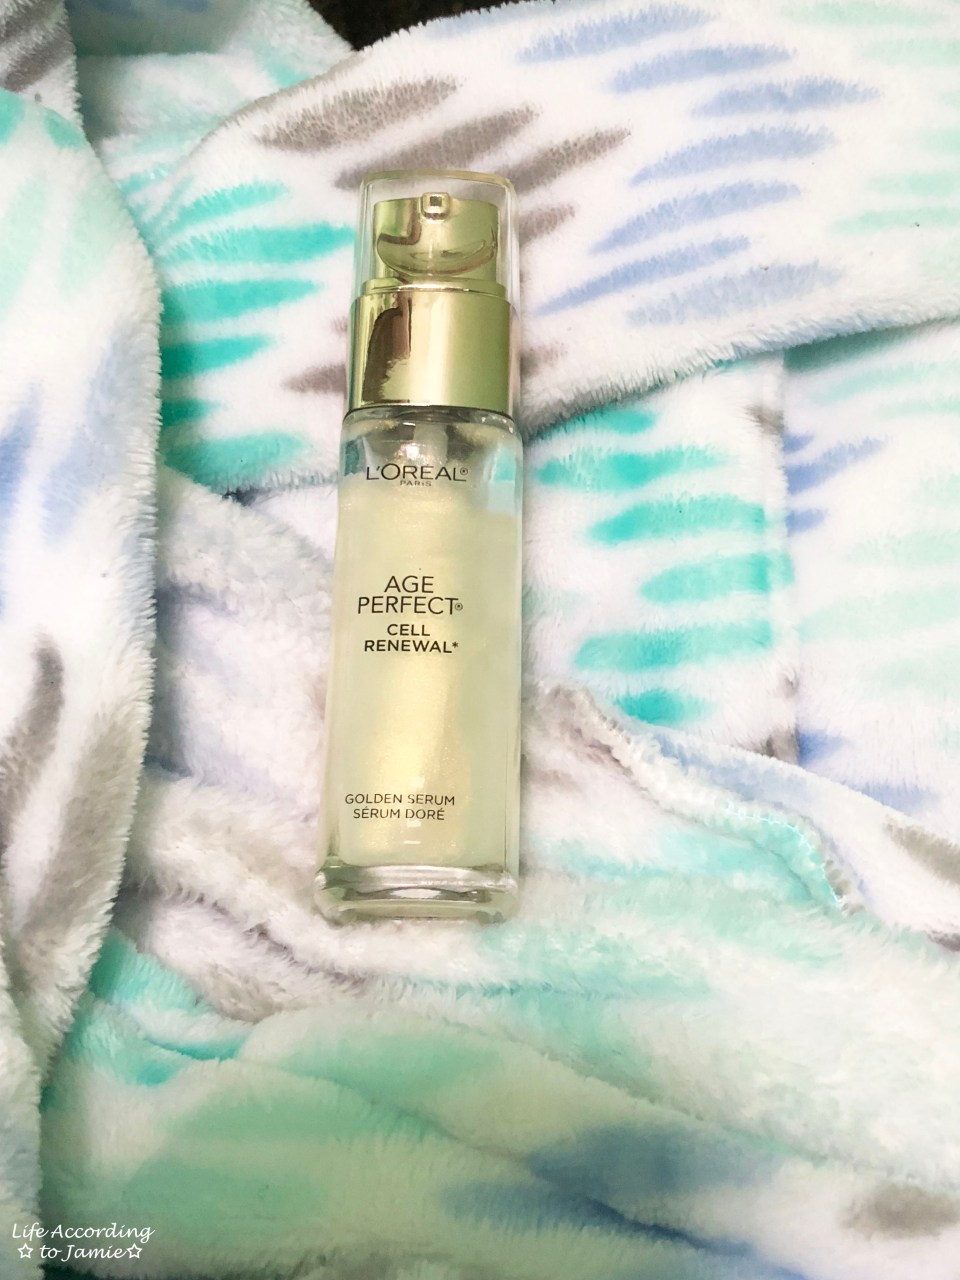 L'Oreal Age Perfect Cell Renewal